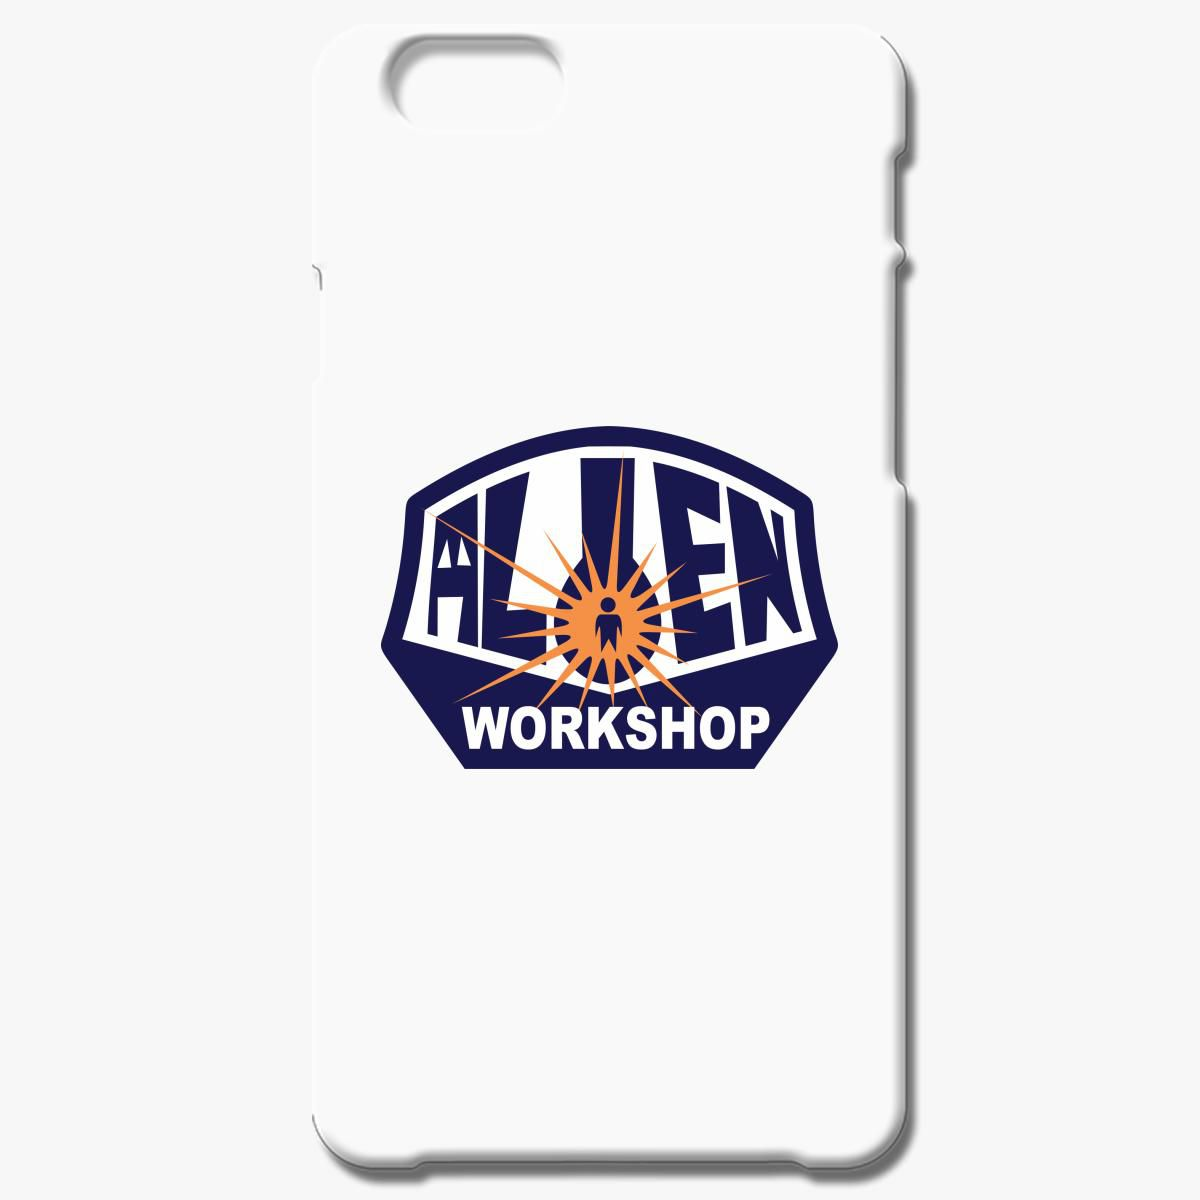 Alien Workshop iPhone 6/6S Case - Customon